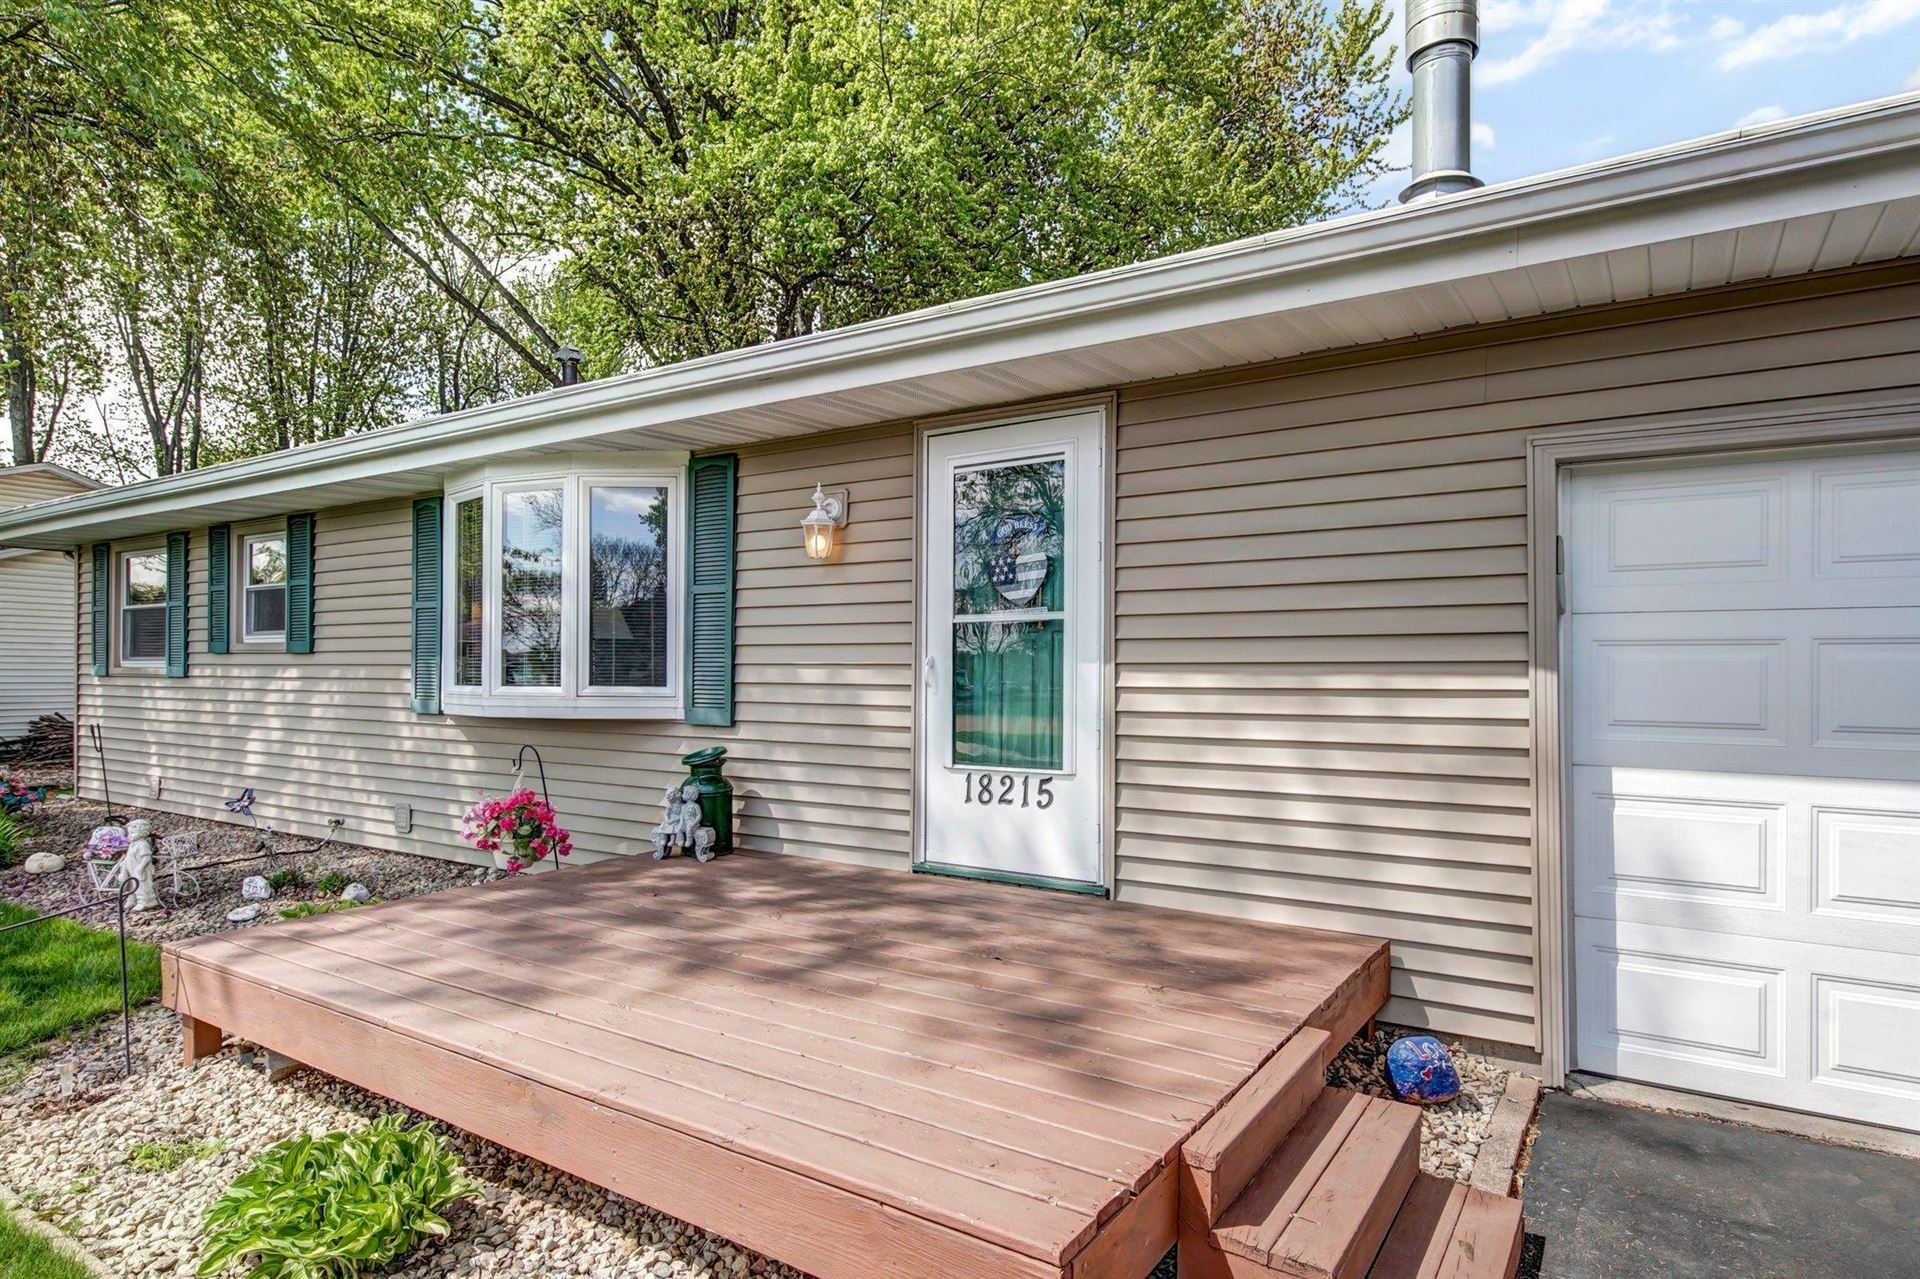 Photo of 18215 Euclid Avenue, Farmington, MN 55024 (MLS # 5754351)